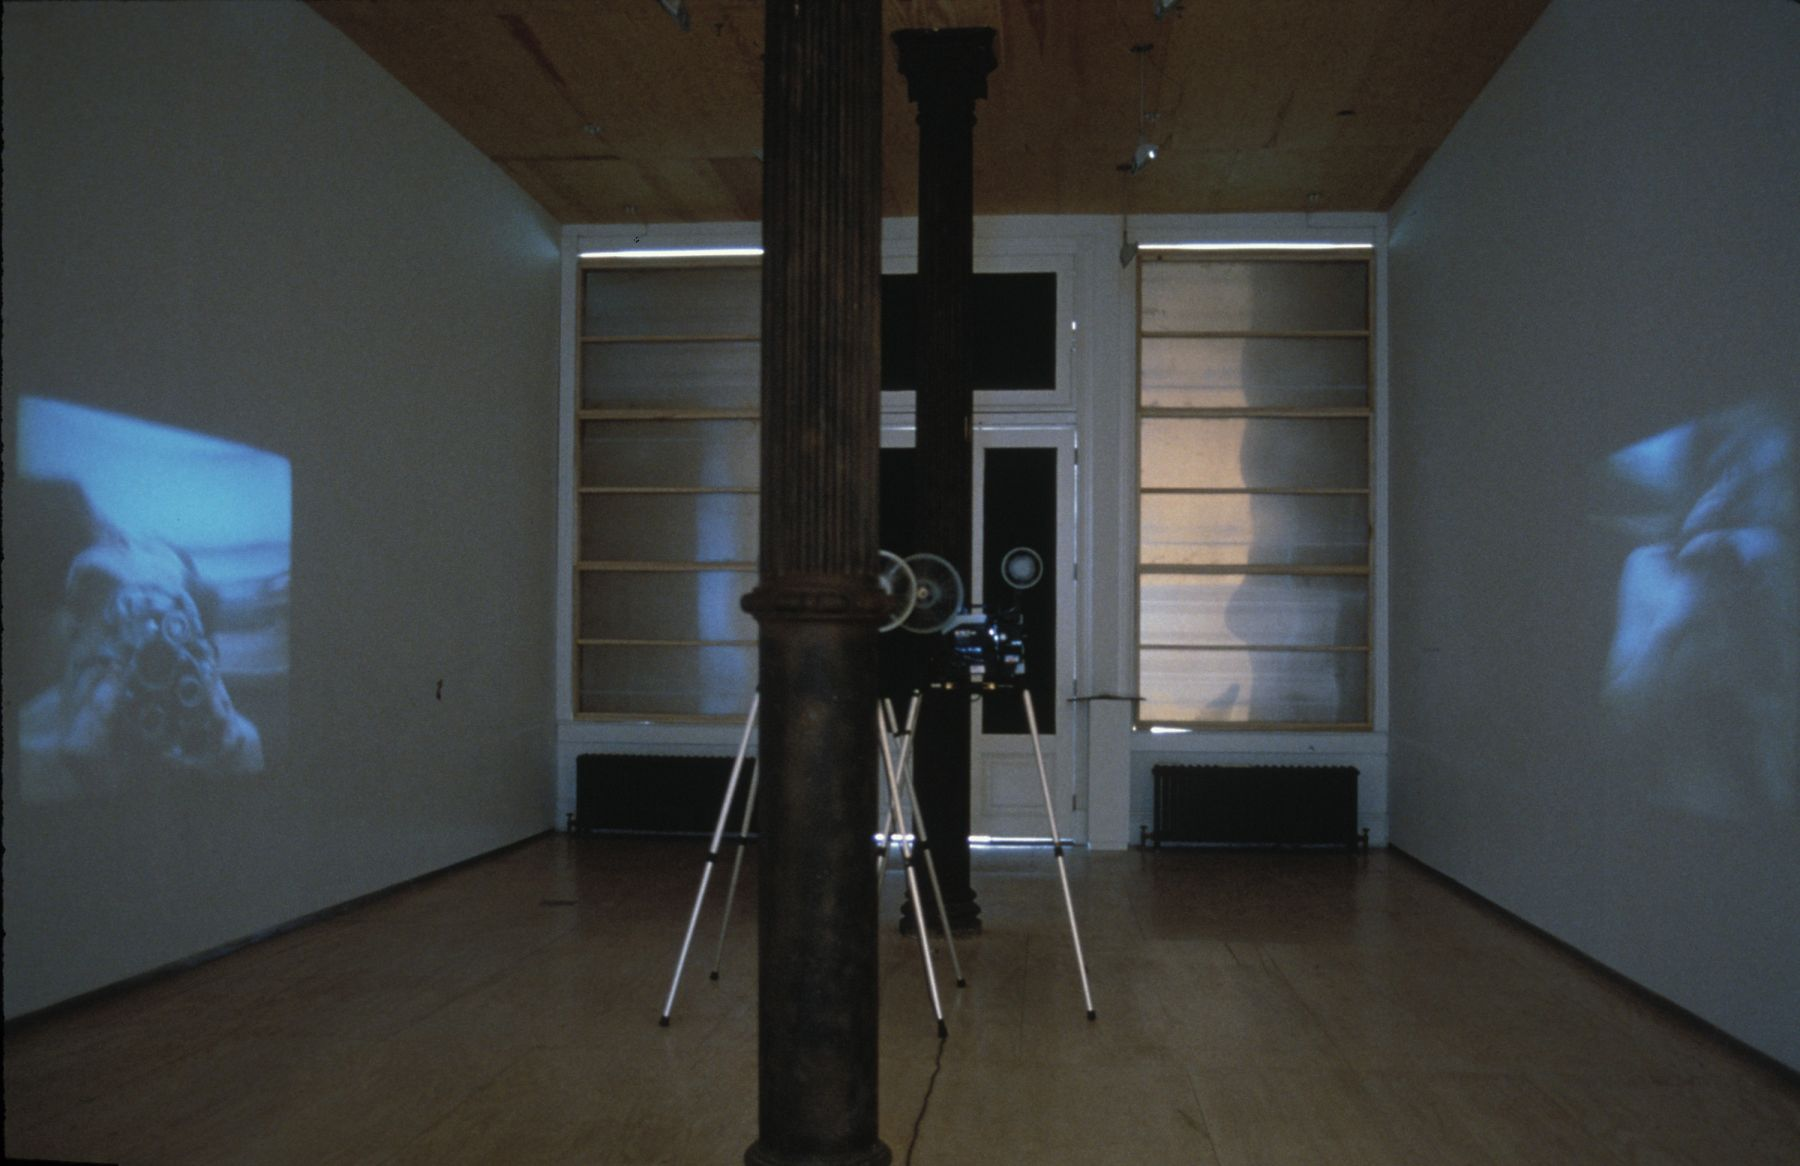 THE CRYSTAL STOPPER Curated by Carlos Basualdo installation view 4